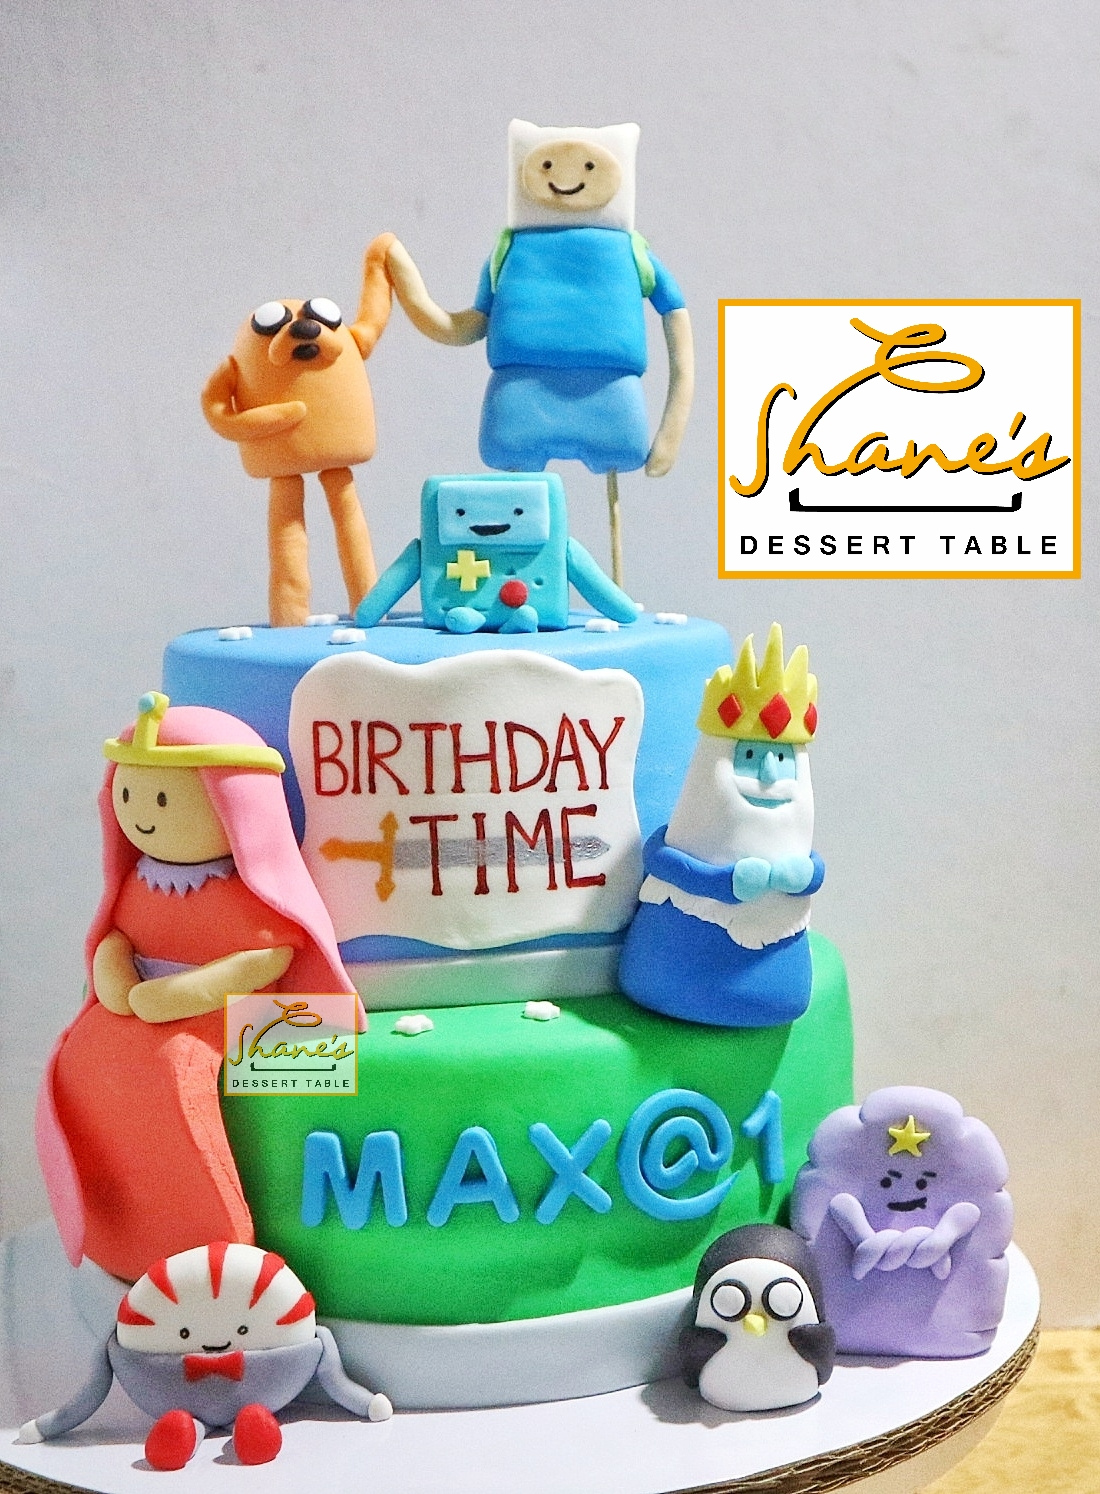 Magnificent Adventure Time Cake Shanes Dessert Table Personalised Birthday Cards Paralily Jamesorg